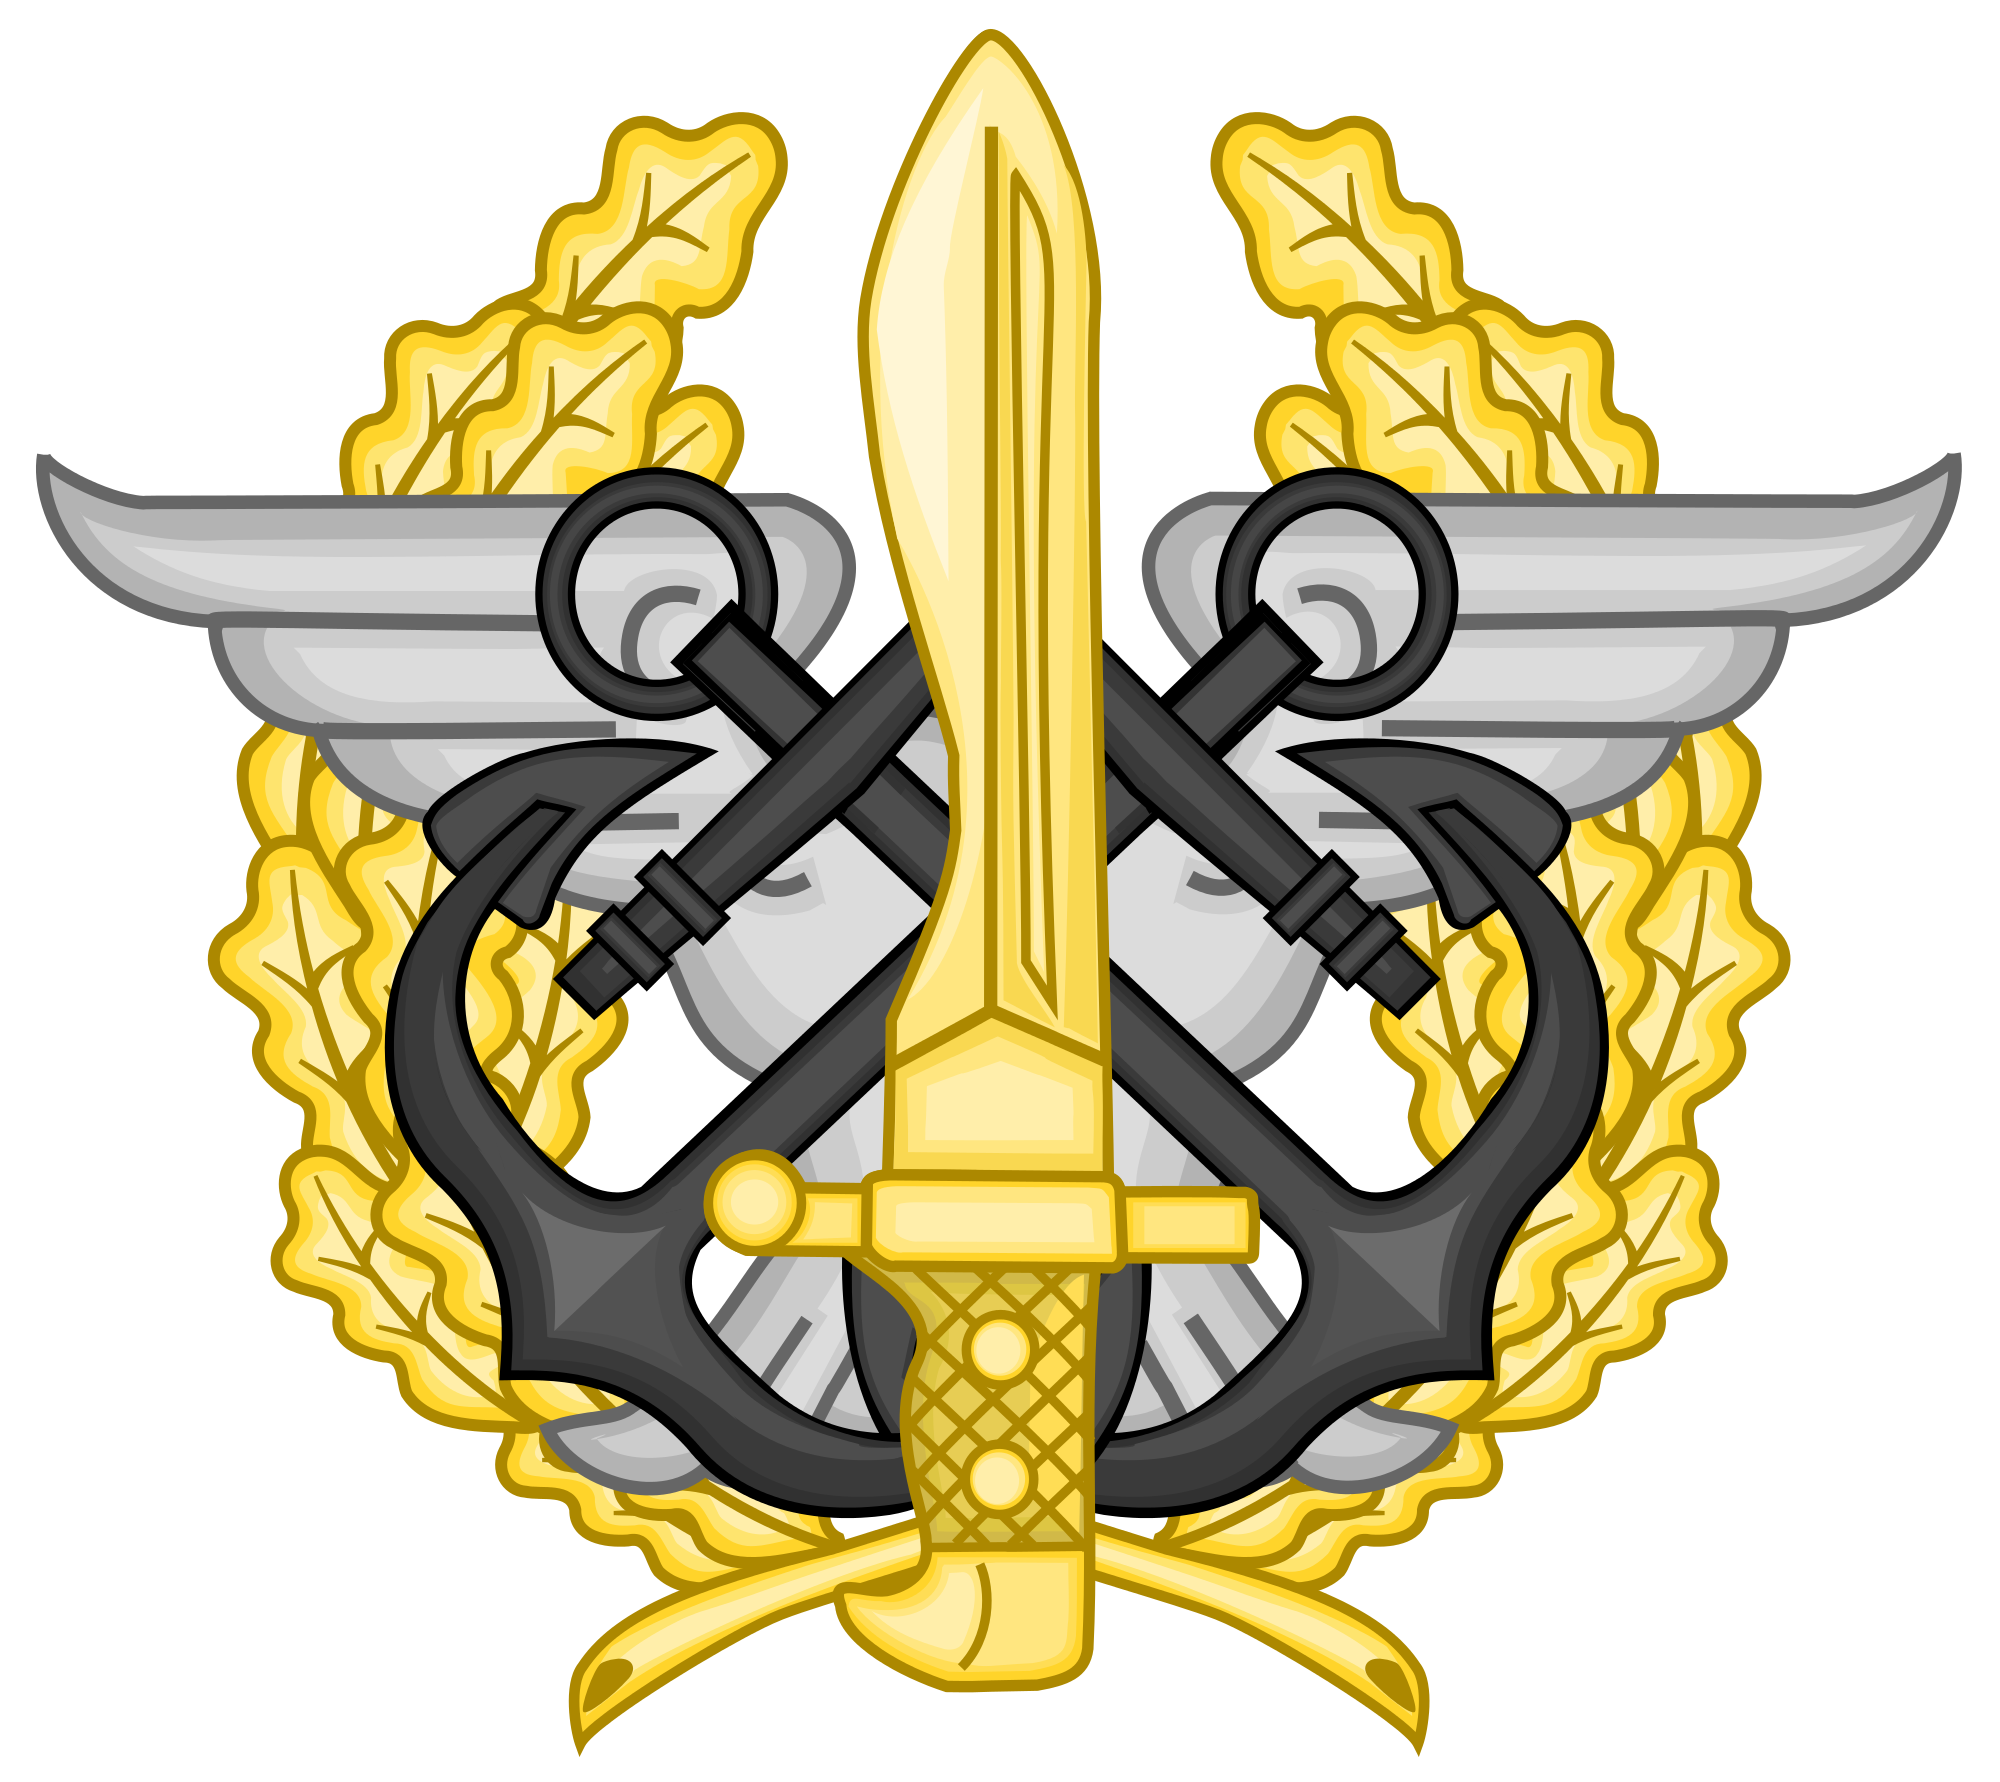 File:Emblem of the Joint Special Operations Command (Spain).svg.